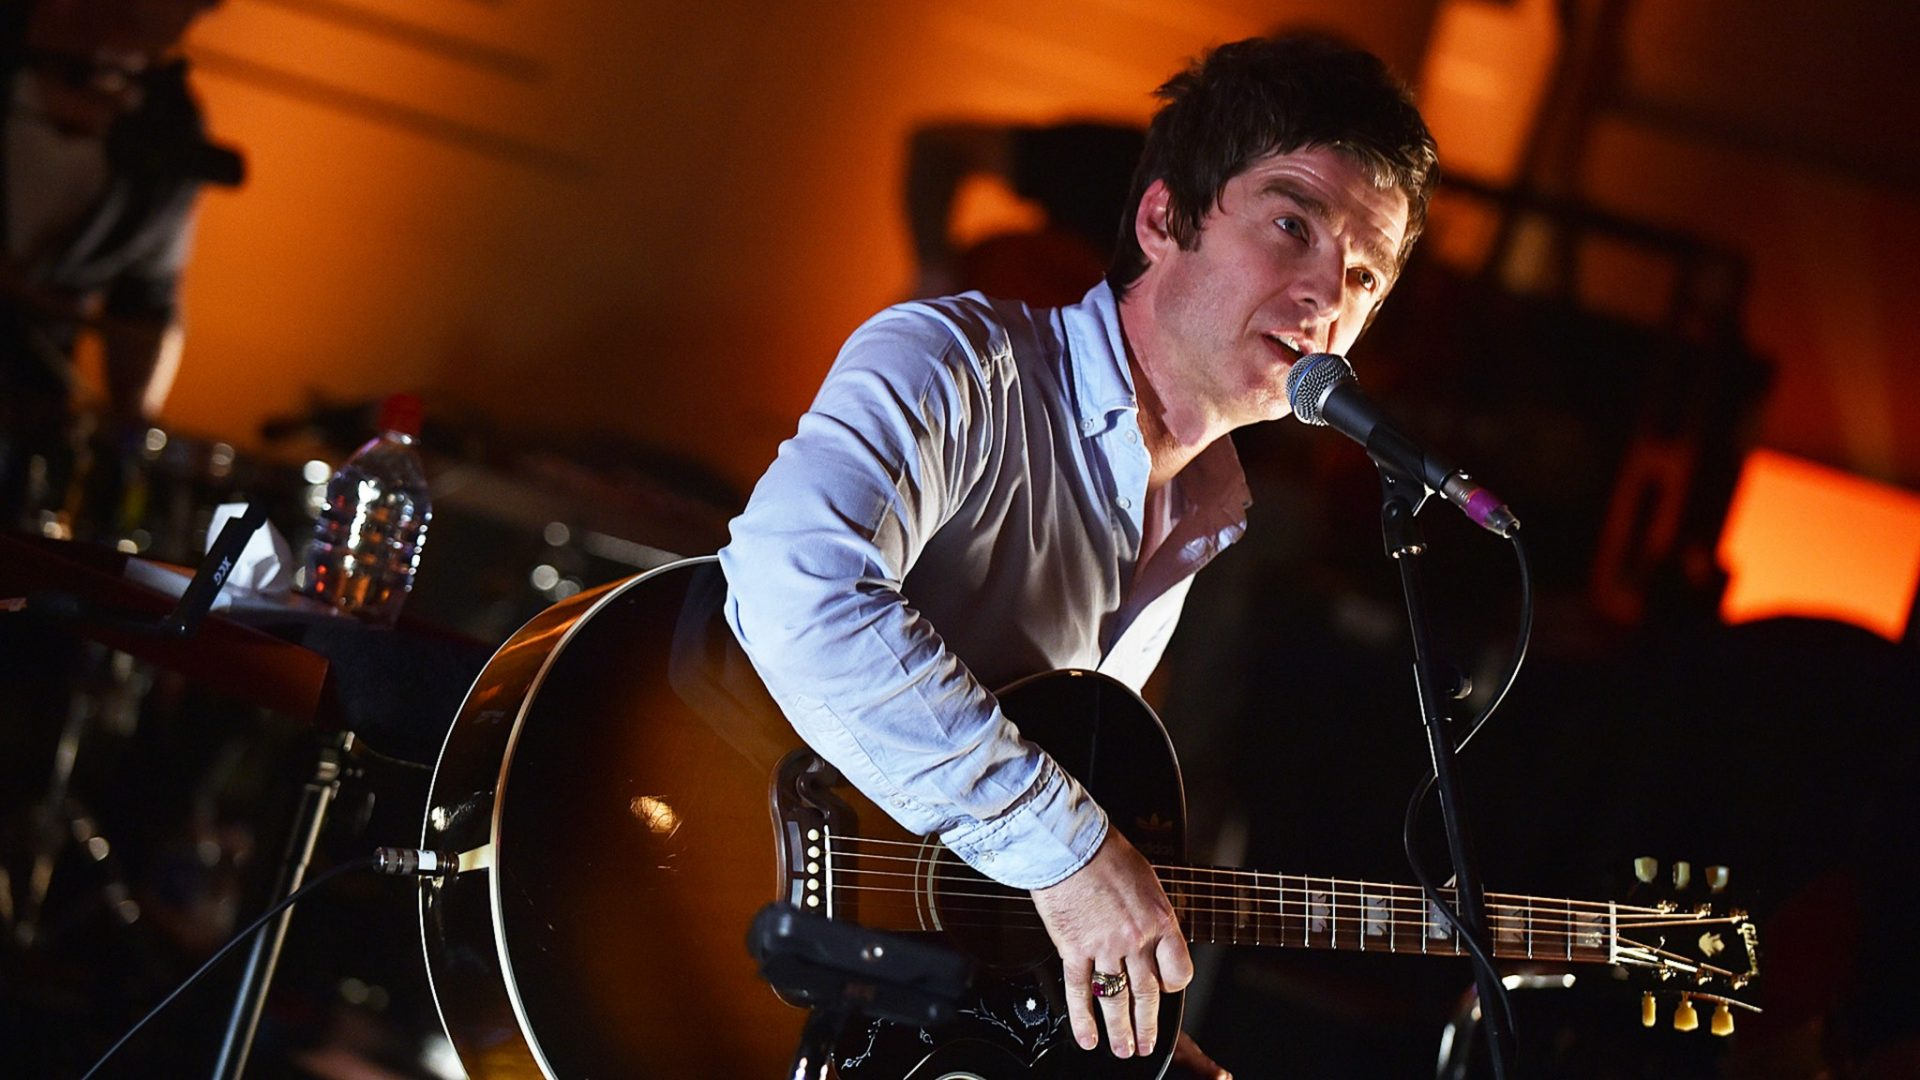 Kendal Calling headliner Noel Gallagher